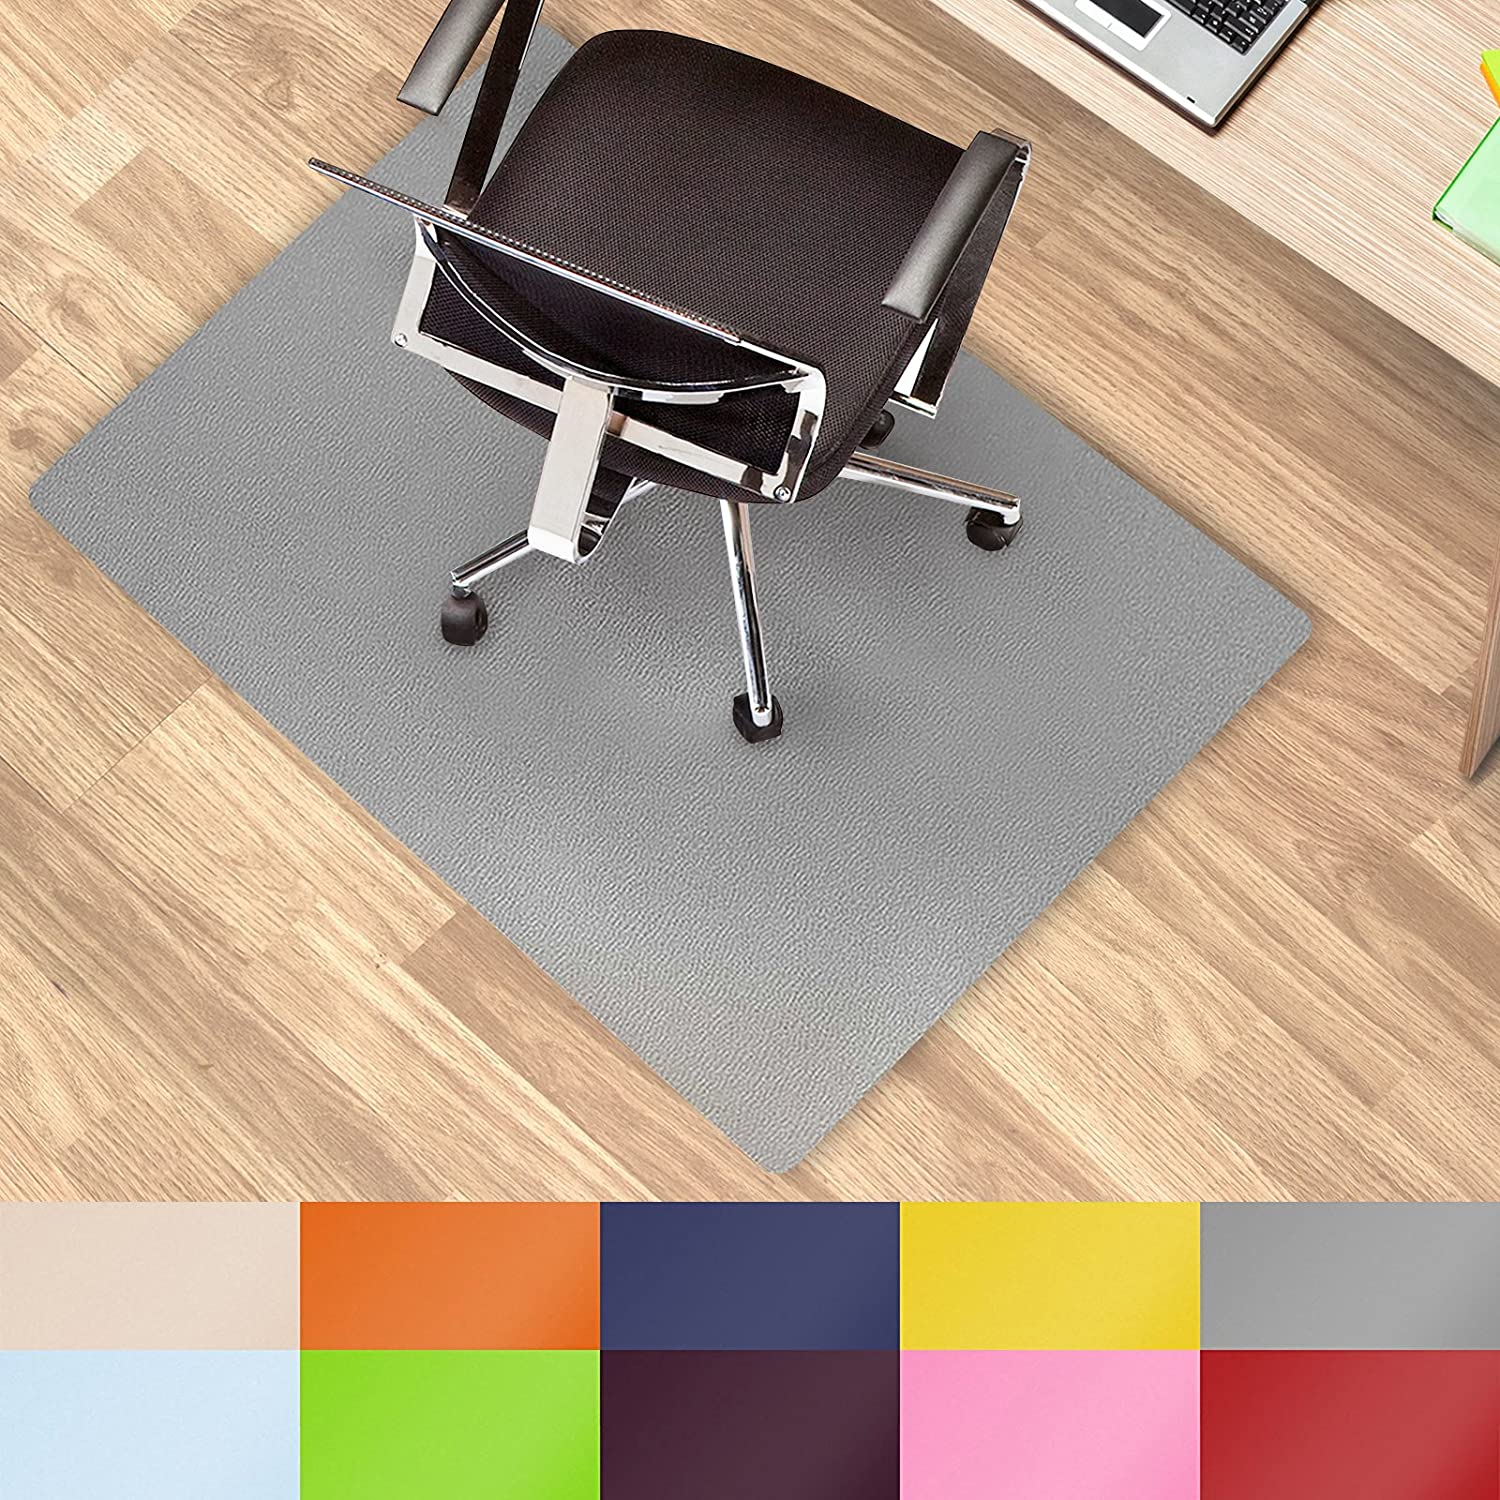 amazon com casa pura office chair mat hard floor 30 x48 desk